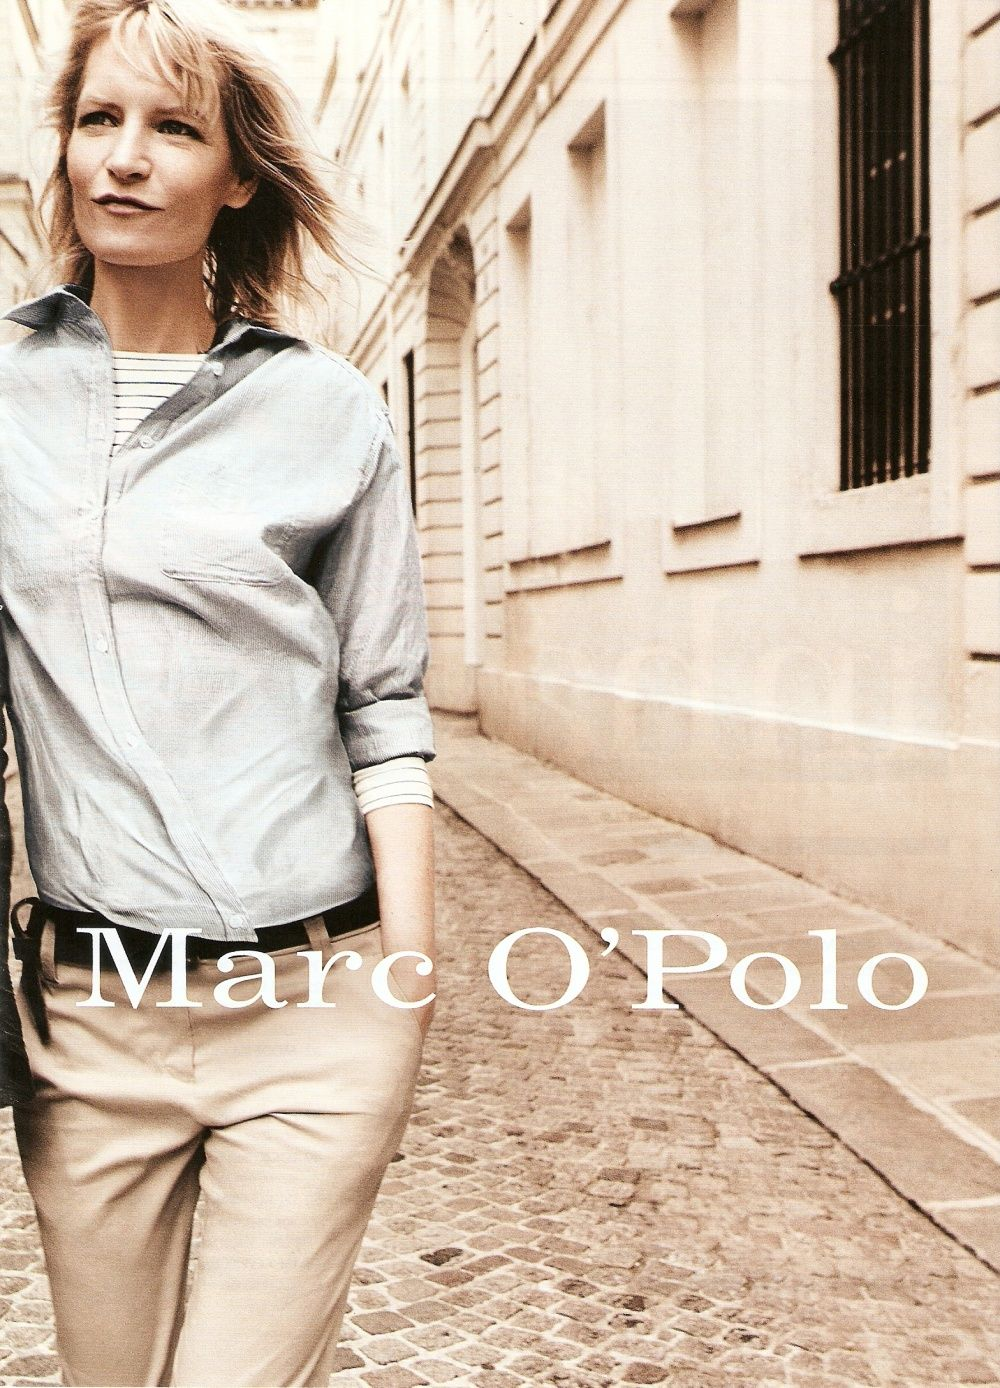 marc o polo spring summer 2012 ad campaign art8amby 39 s blog. Black Bedroom Furniture Sets. Home Design Ideas